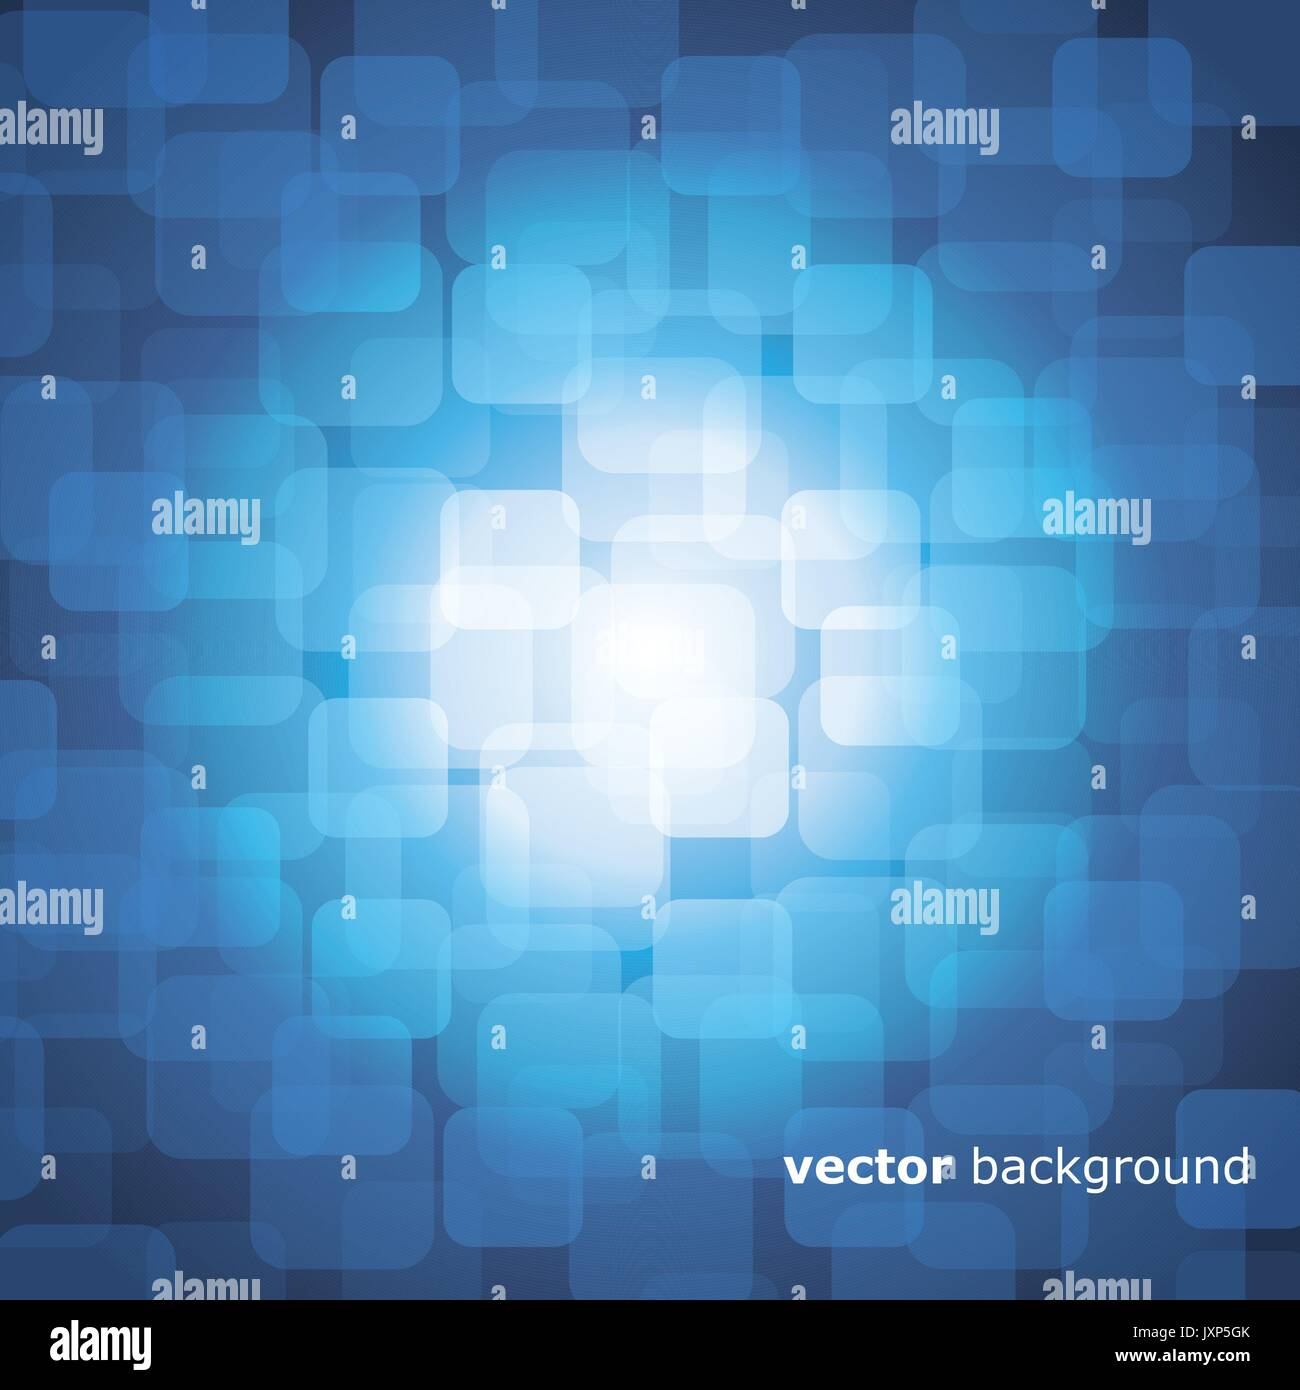 Vector 3D Warped Squares On Blue Background with Light Stock Vector